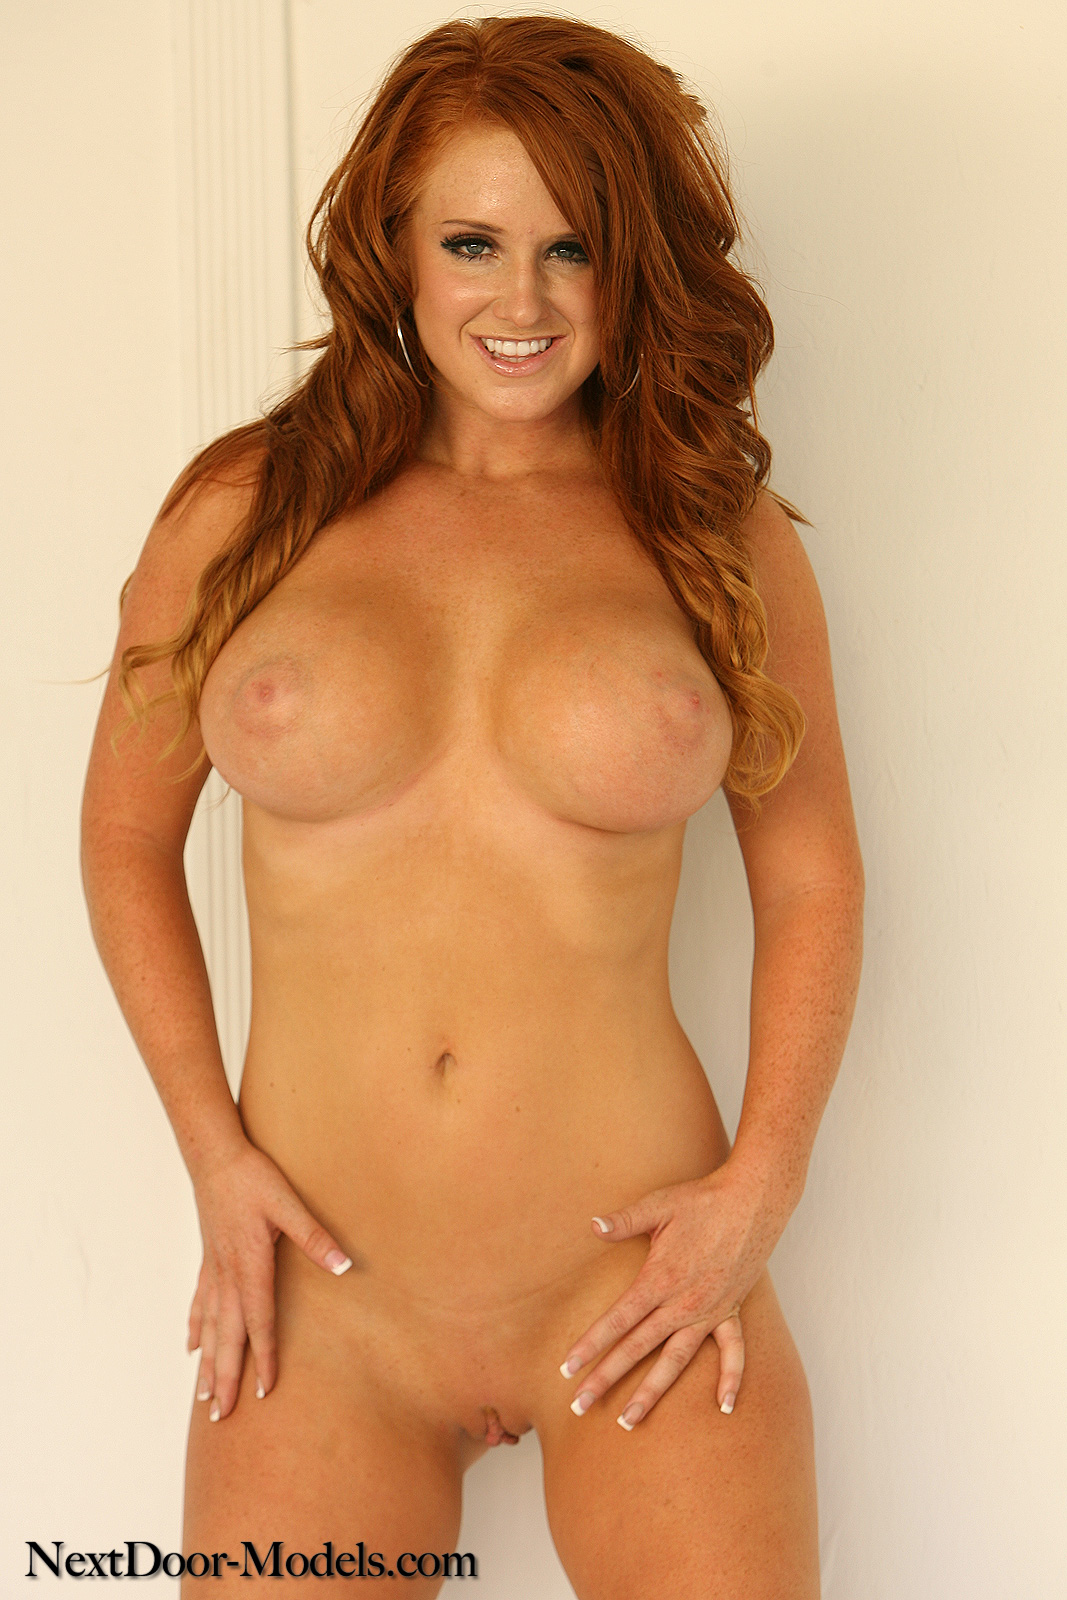 Hot Naked Redhead Woman